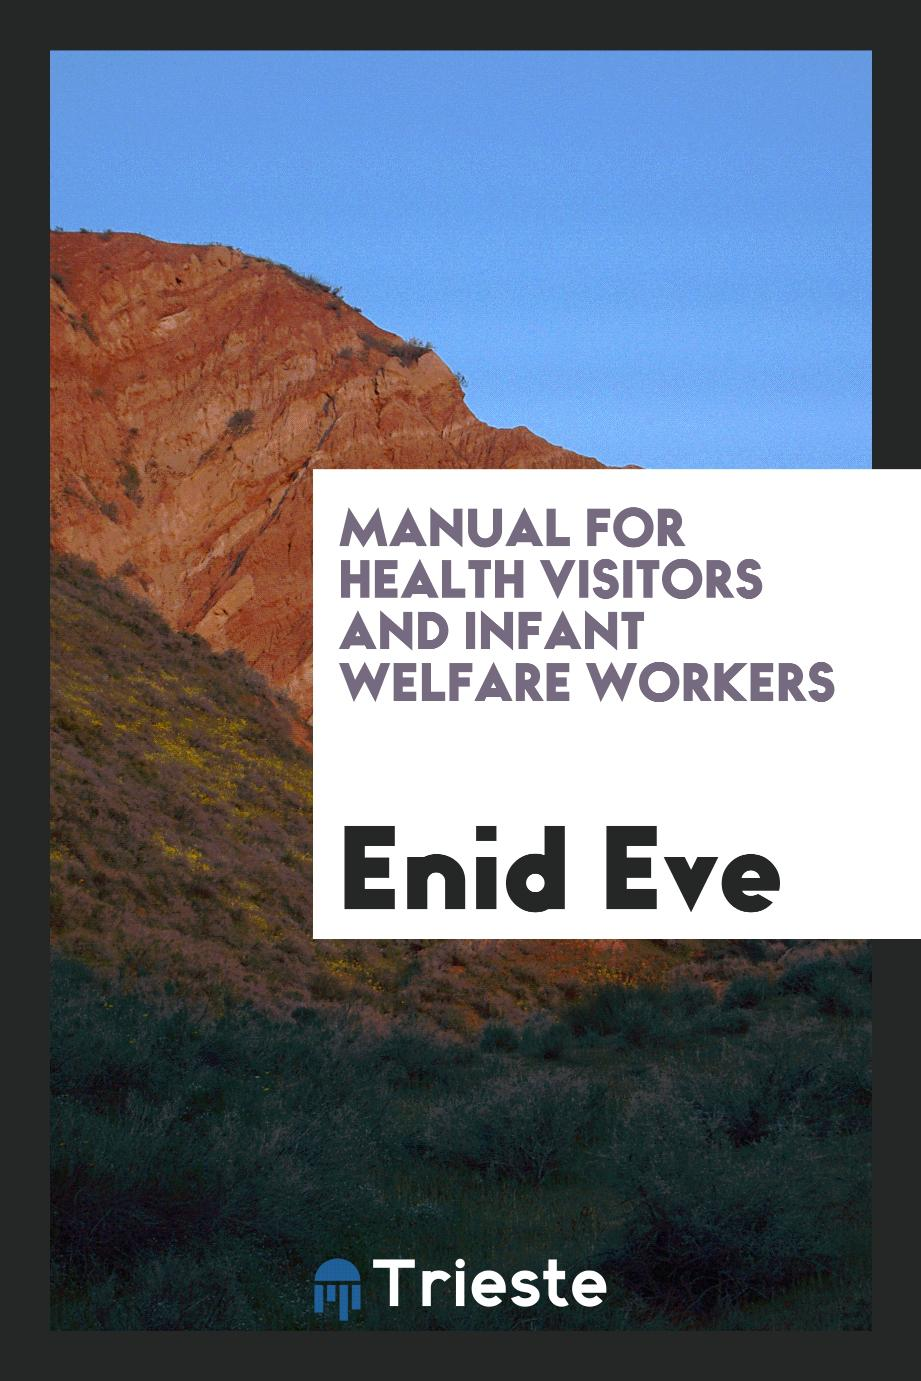 Manual for health visitors and infant welfare workers